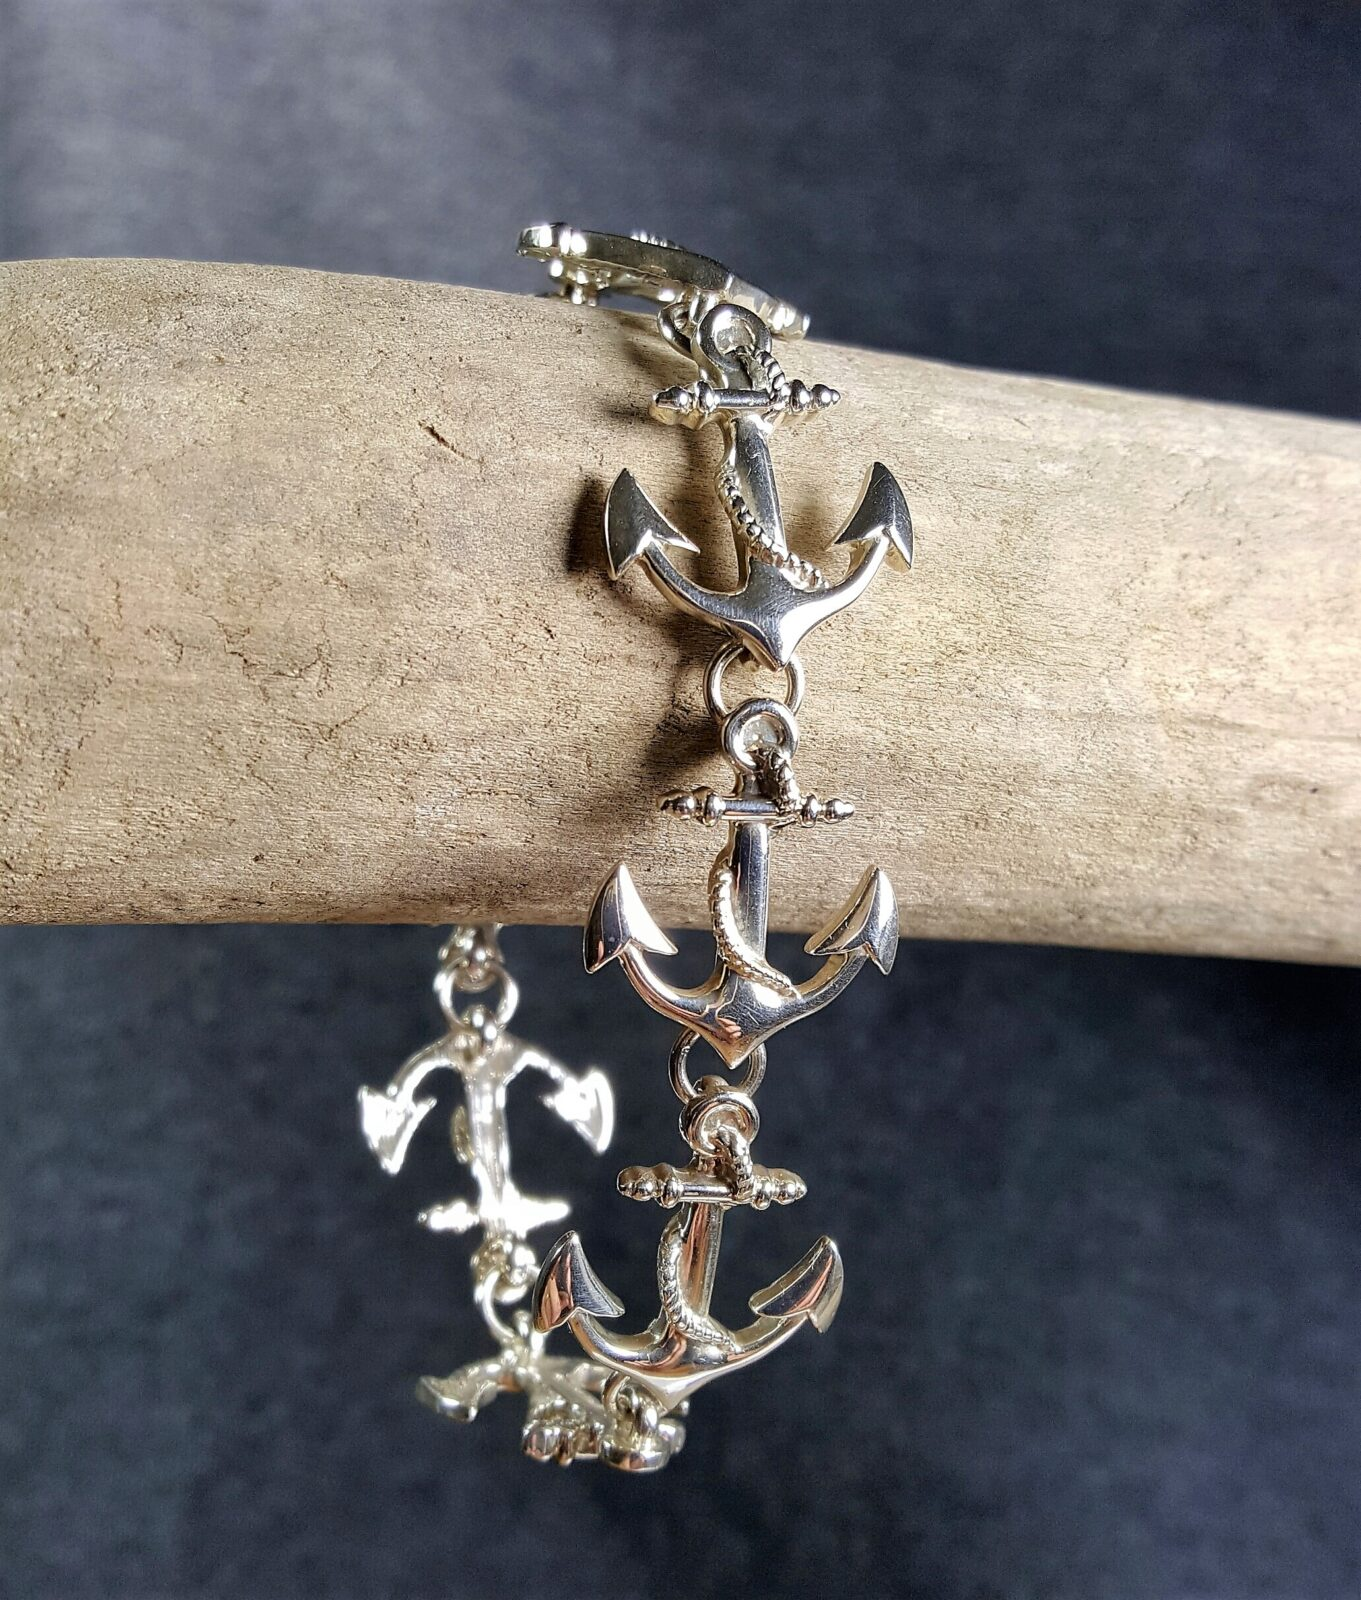 Anchor Bracelet Sterling Silver sizes 7-7.5 inch